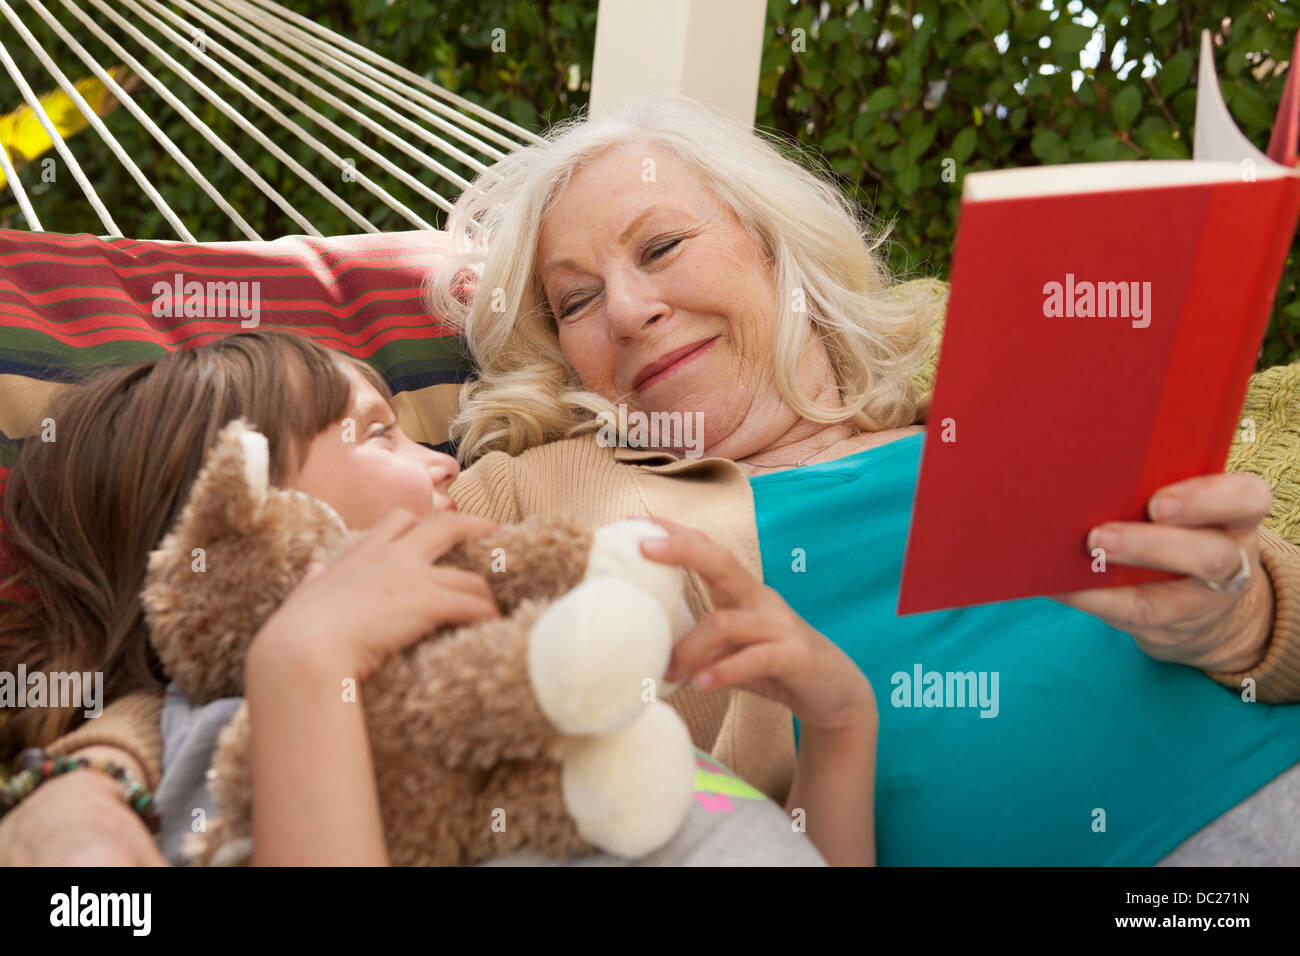 Grandmother and granddaughter reading book in hammock - Stock Image